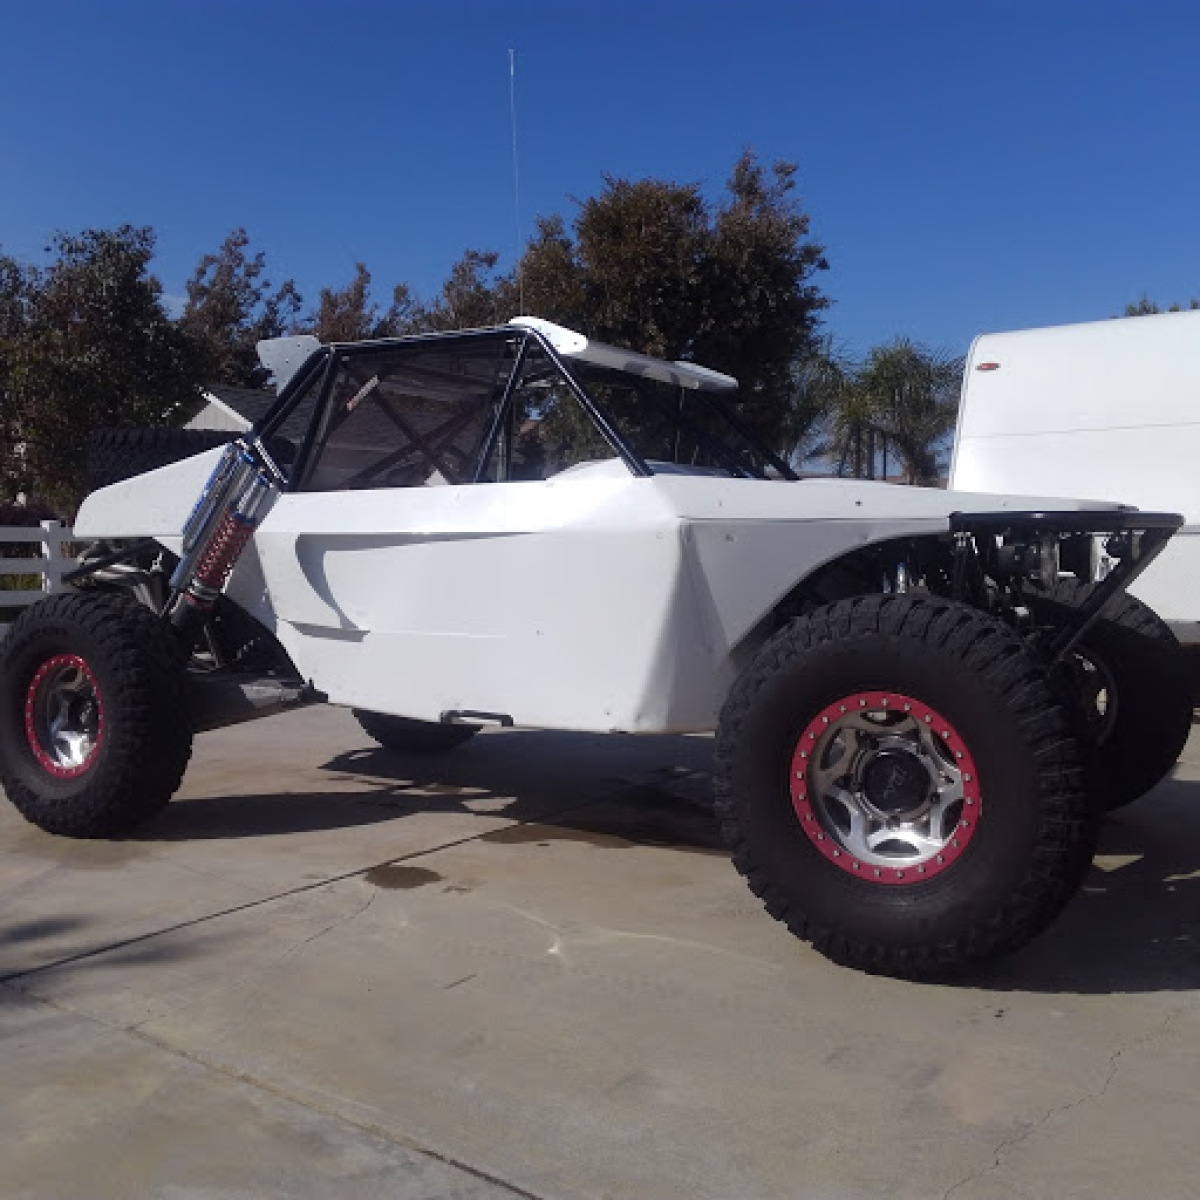 Off Road Classifieds | PRICE REDUCED - RACE CAR - NORRA